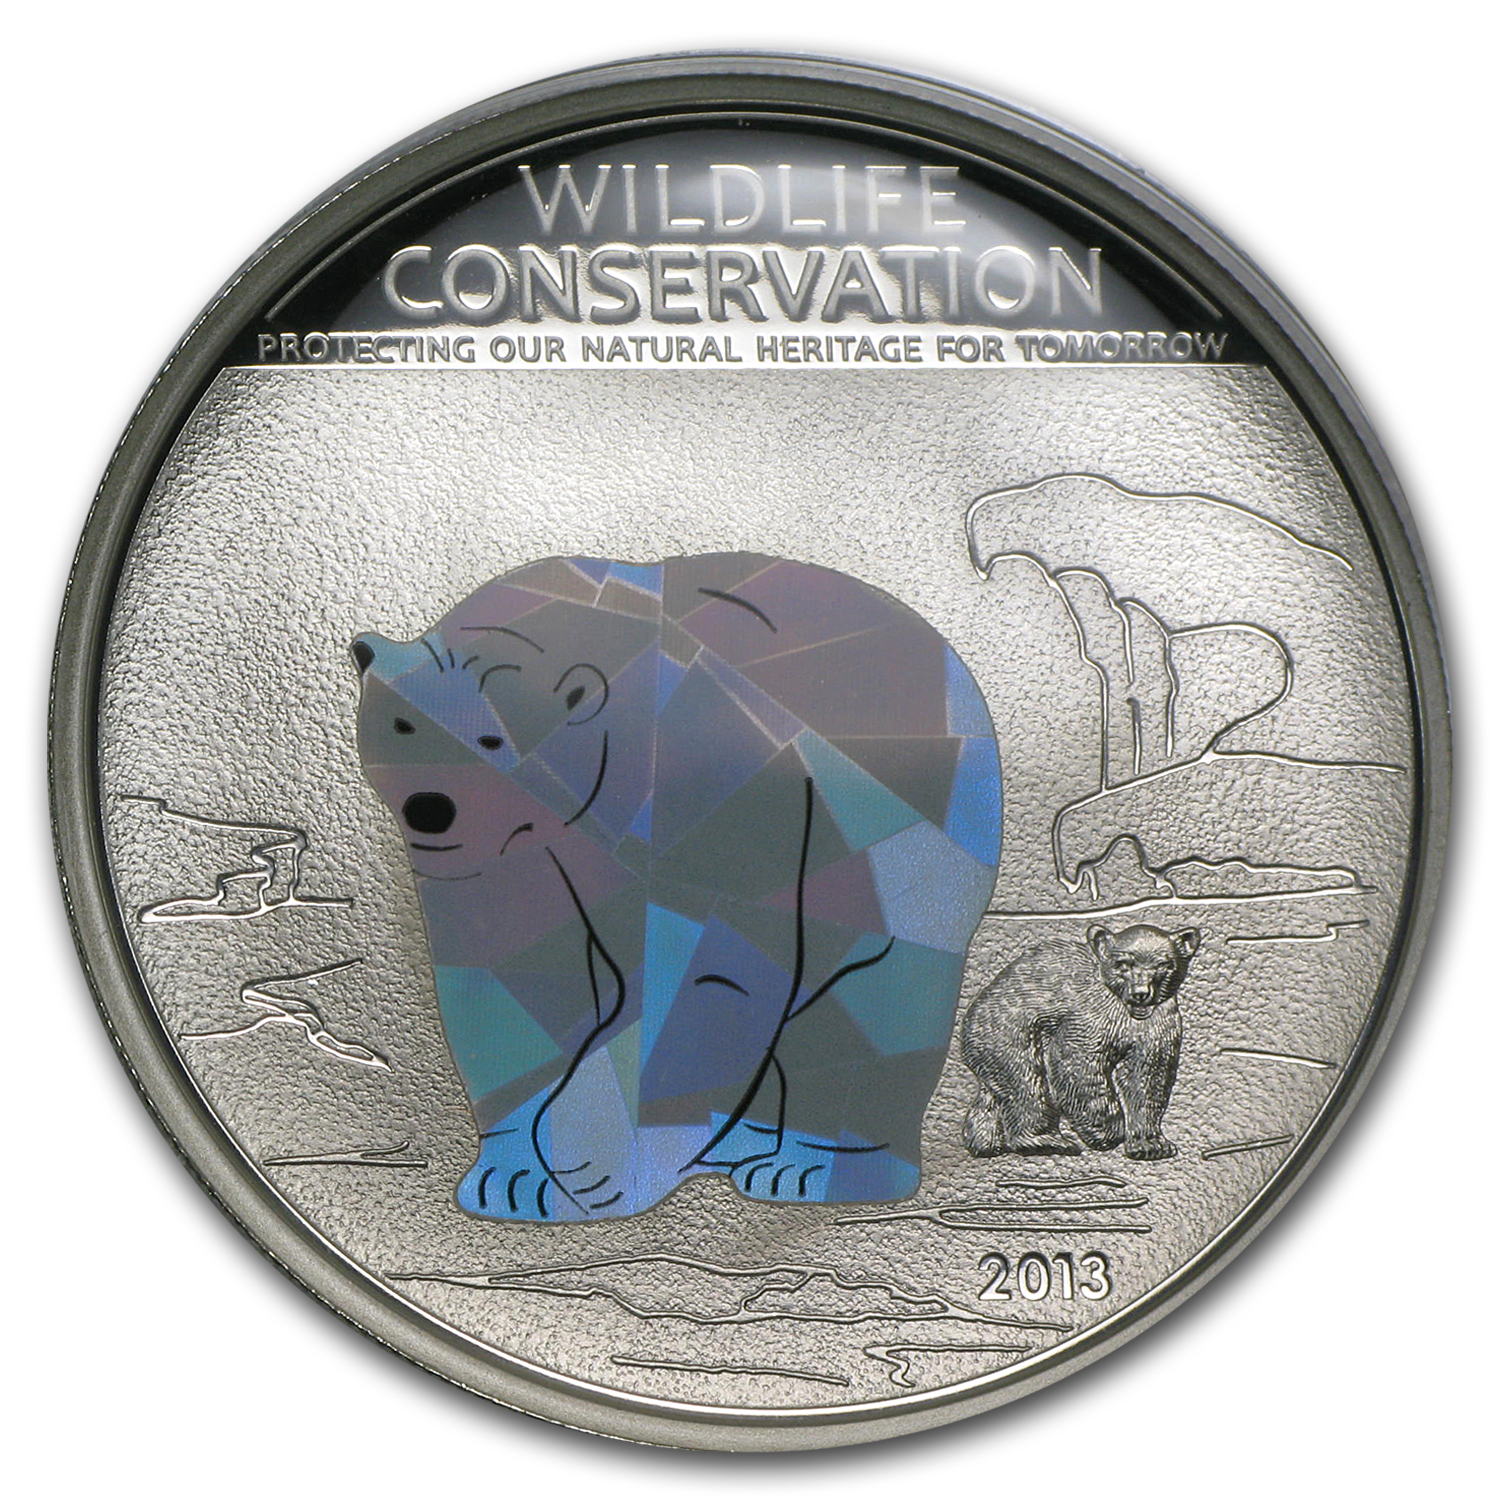 2013 Cook Islands Silver Wildlife Conservation Polar Bear Prism